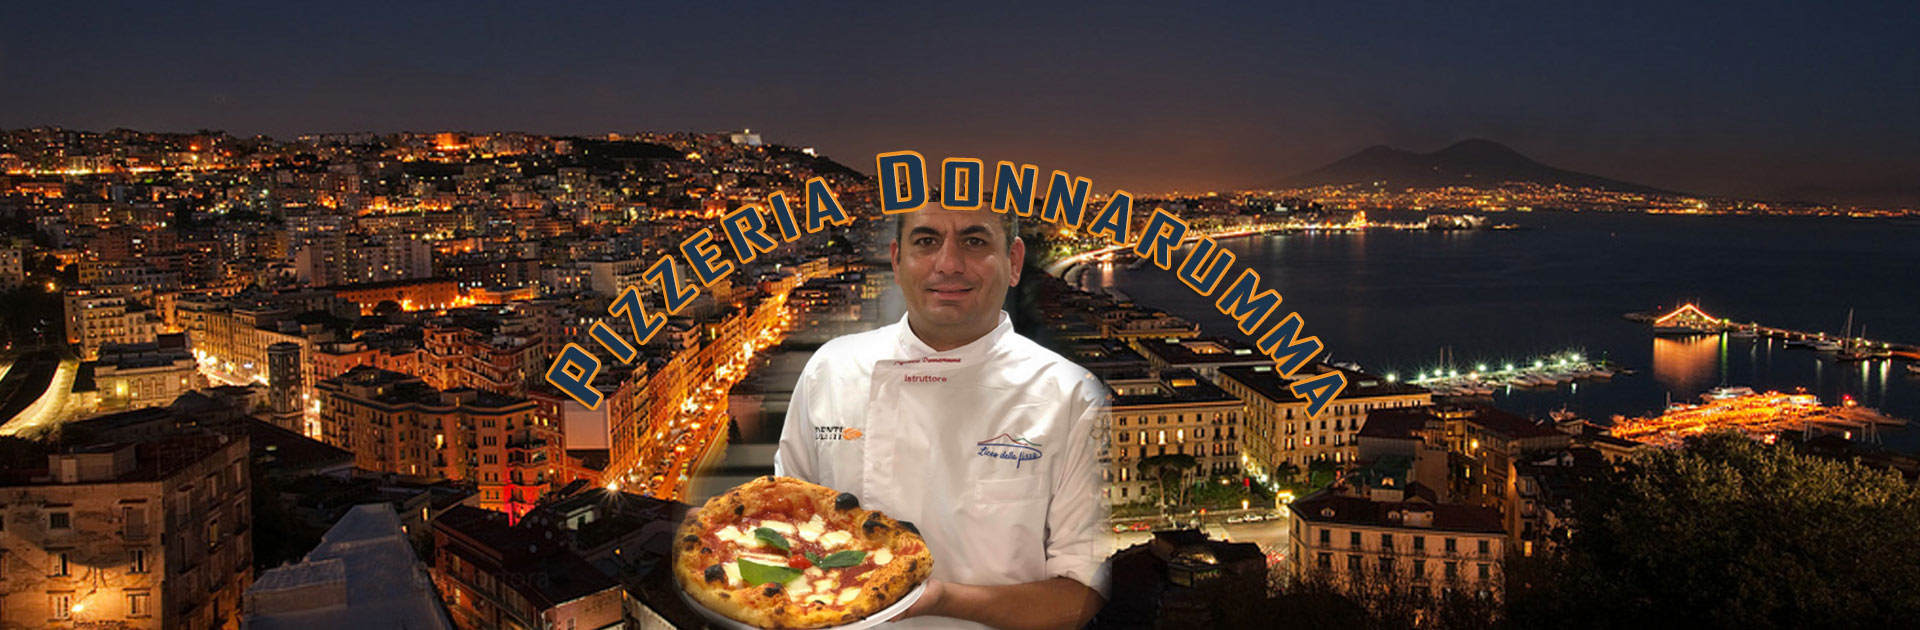 home_pizzeria-donnarumma